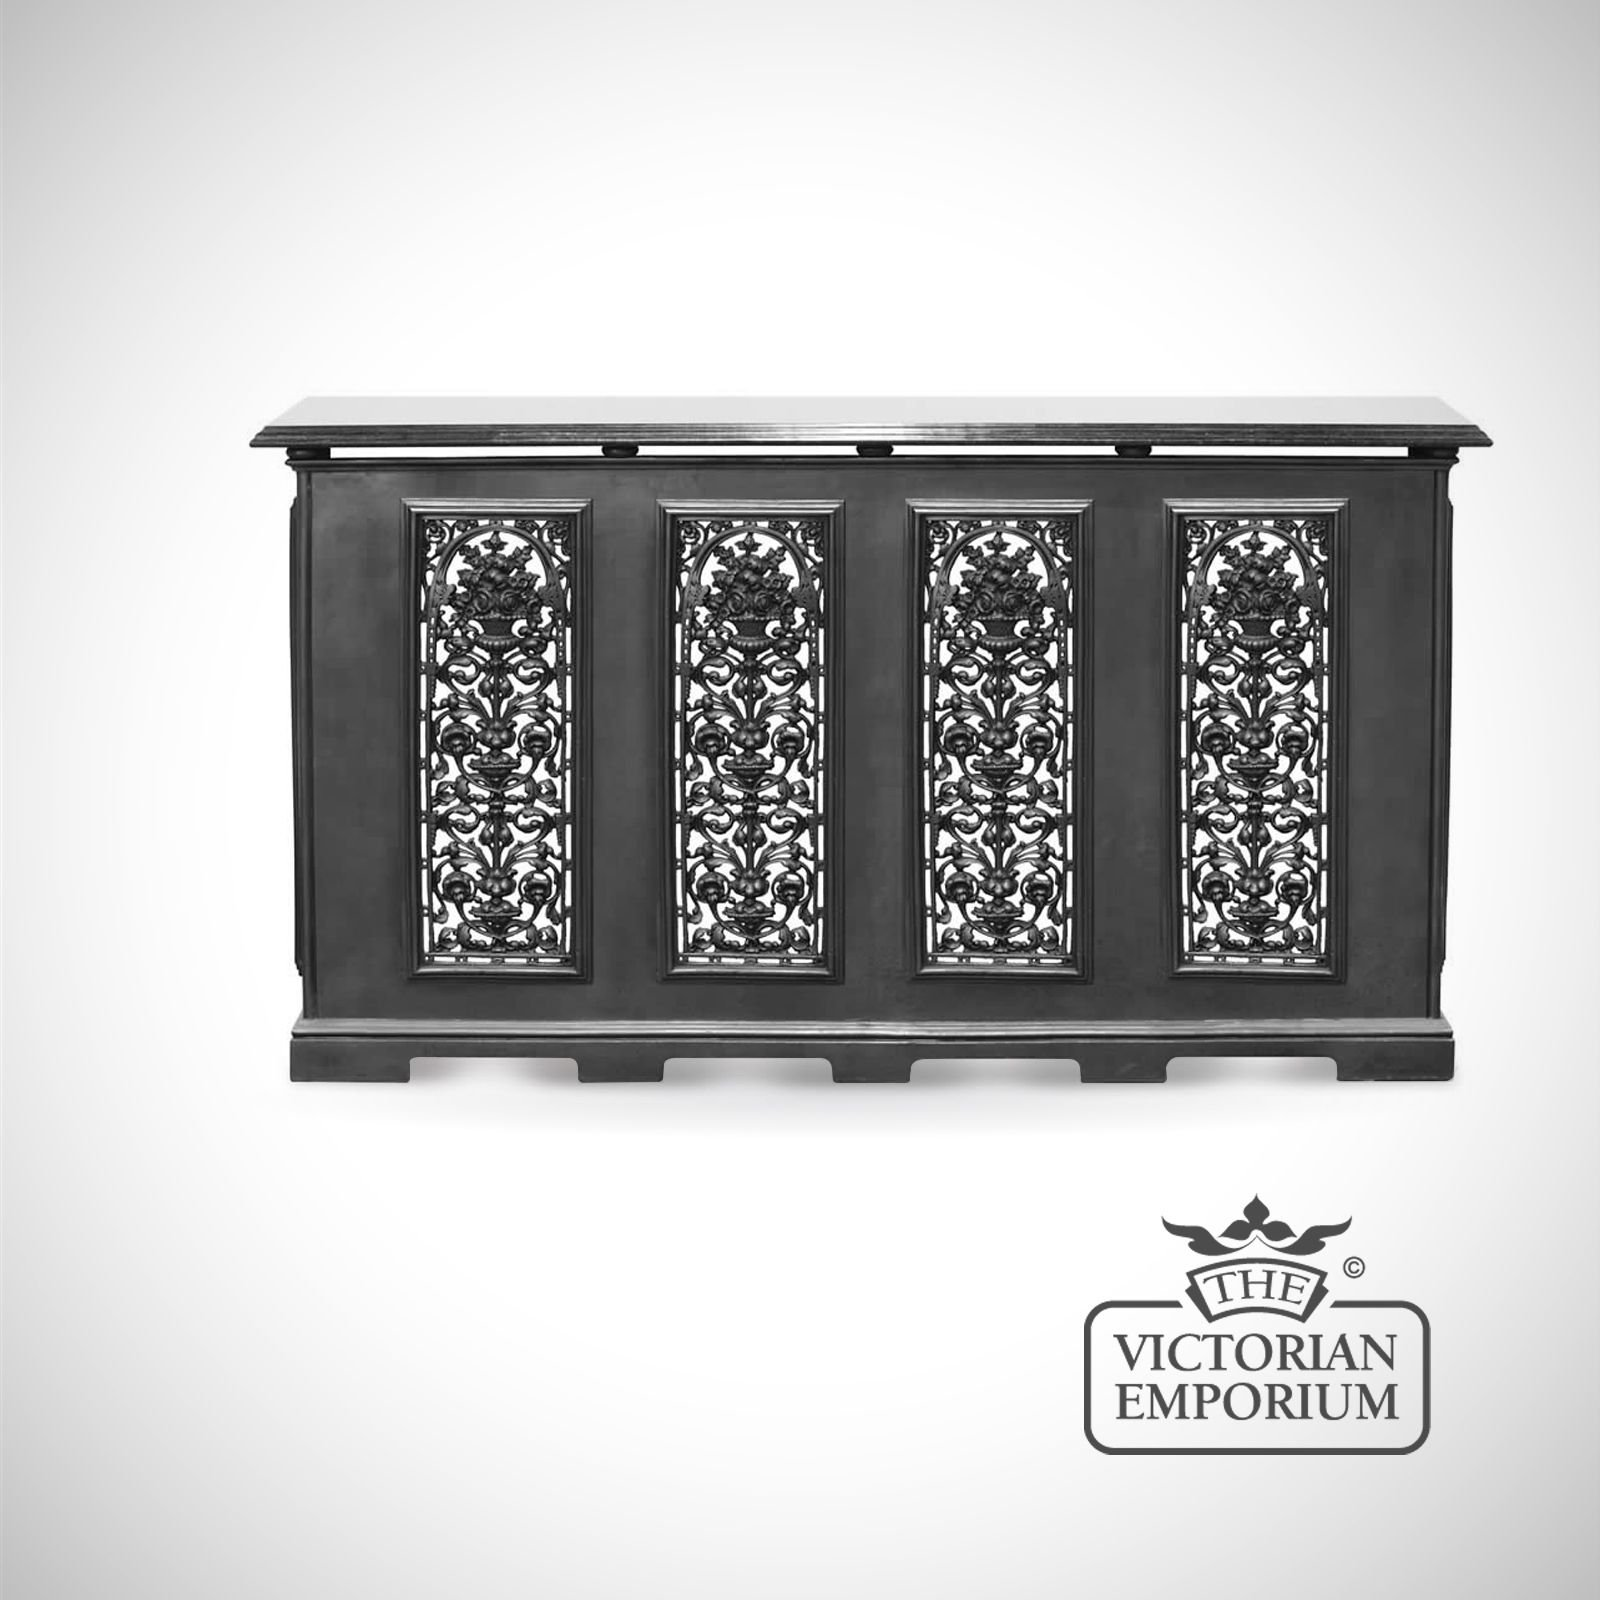 Cast iron 4 panel radiator cover with decorative vase design - Cast iron radiator covers ...